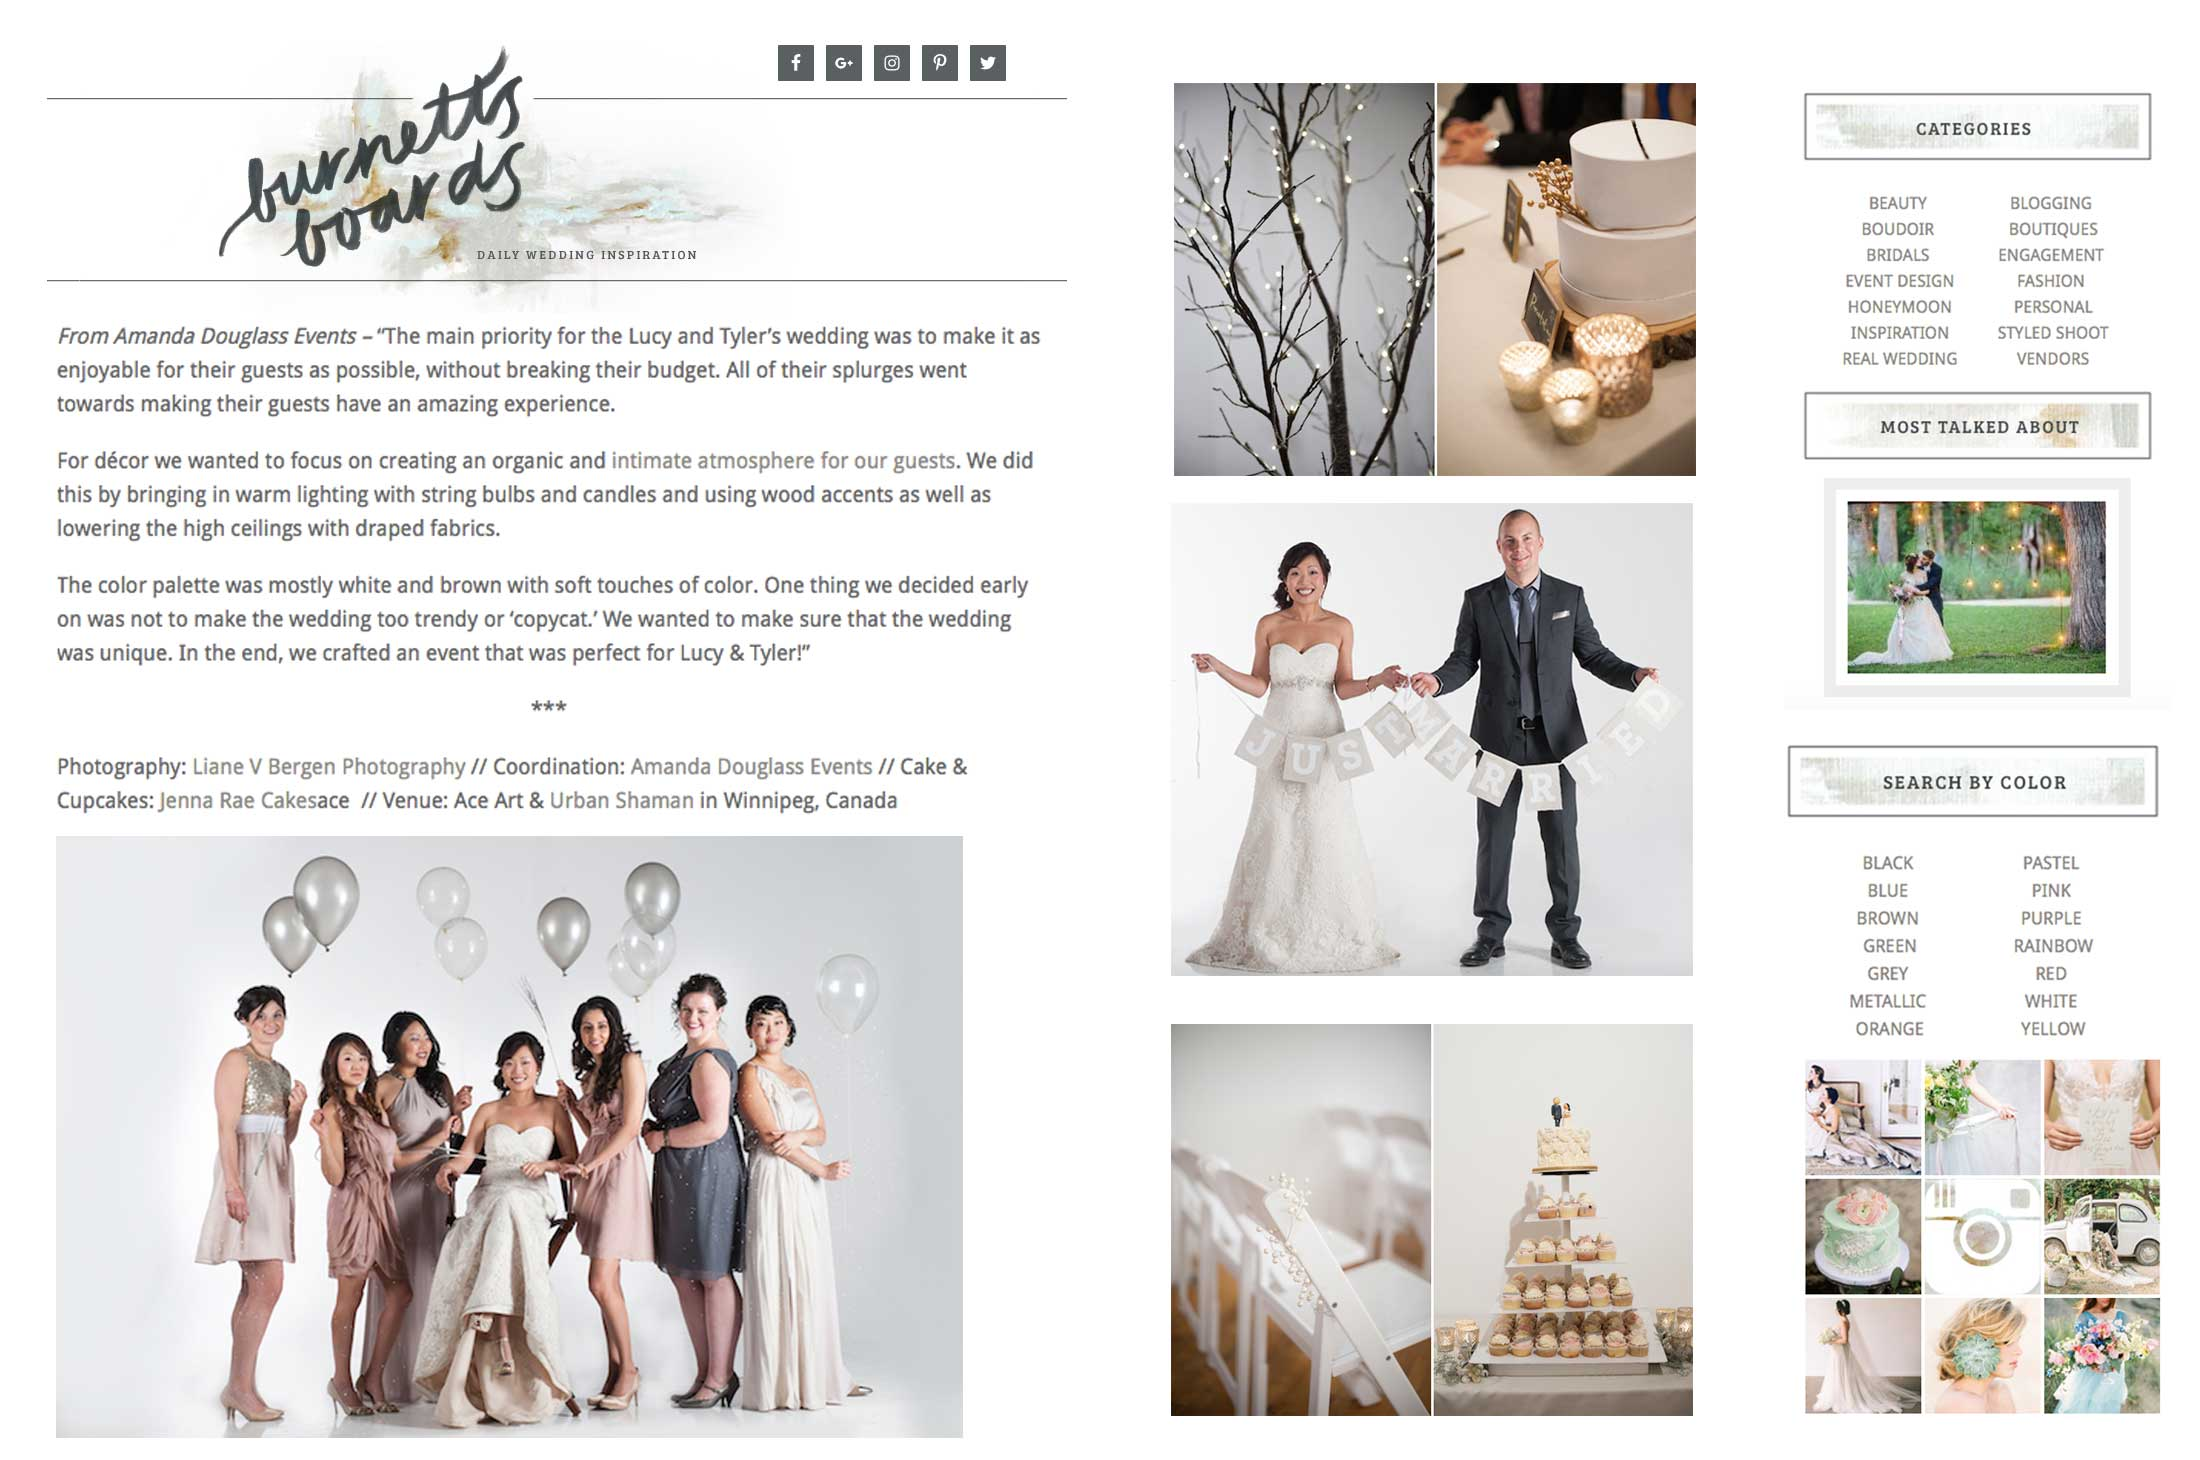 Winnipeg Wedding Planner and Inspiration Feature: Burnett's Boards